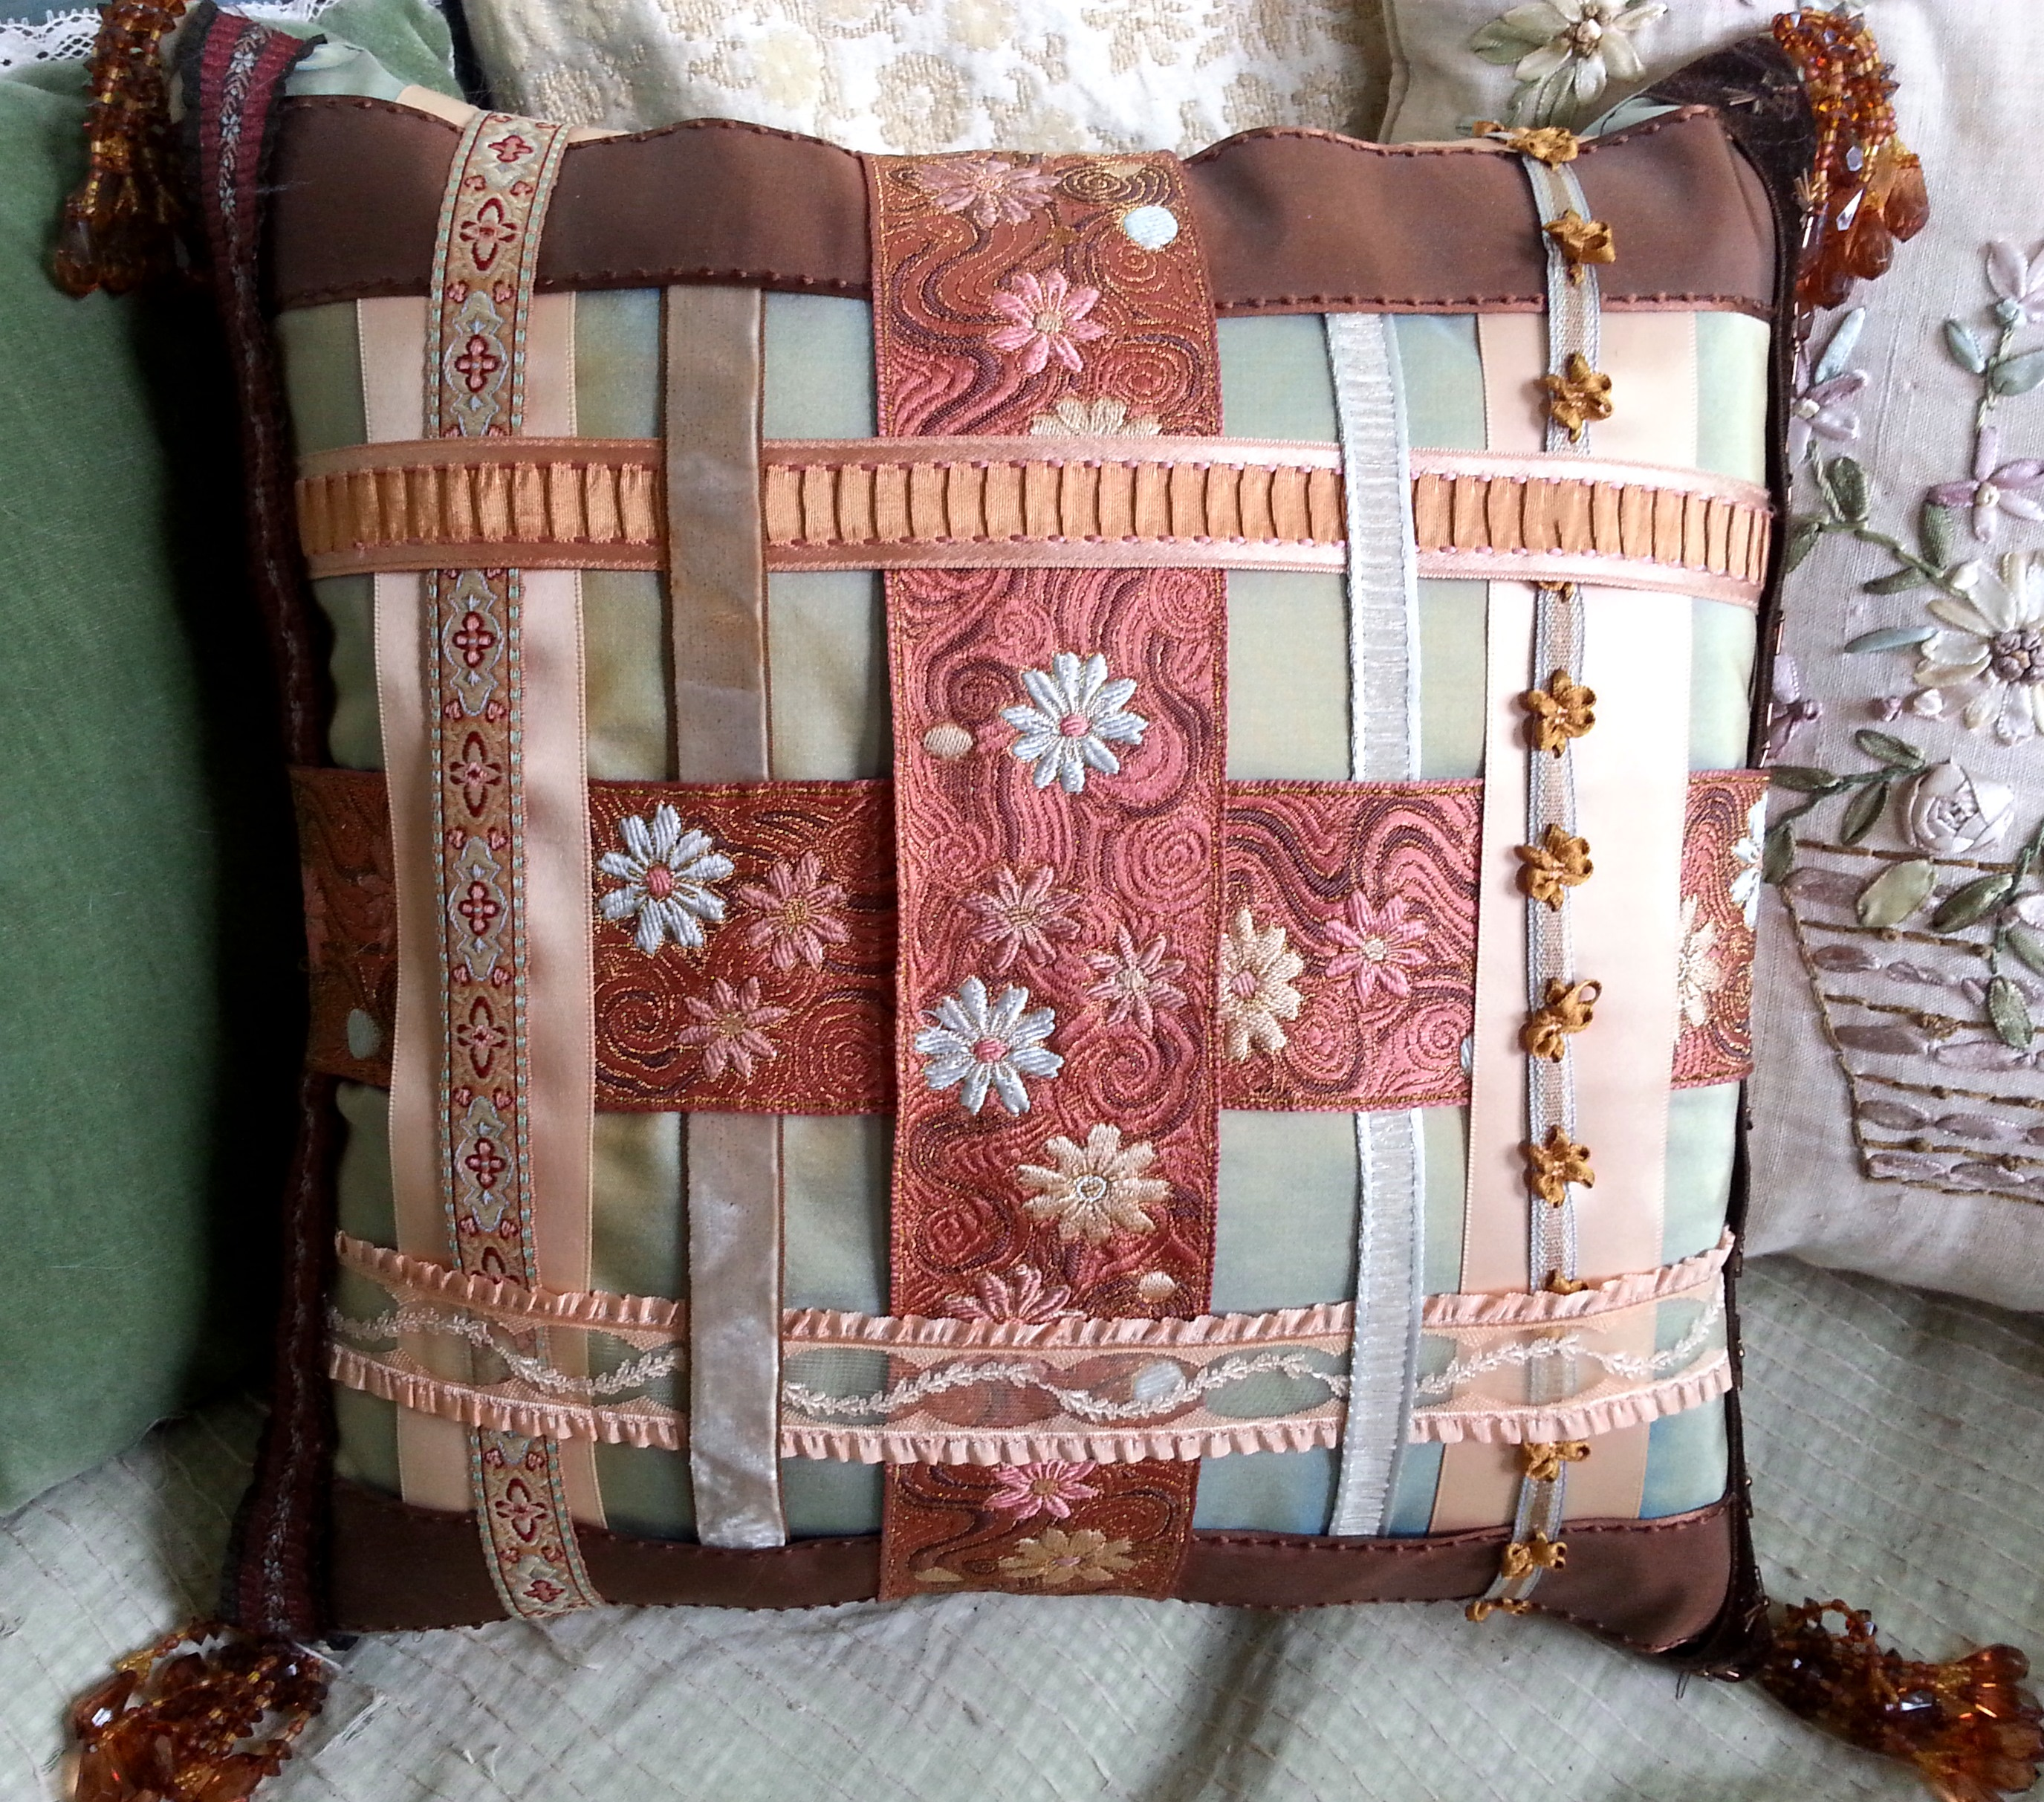 This is the very first pillow I ever made. These ribbons are all from Cush Cush fabrics where I had my artistic epiphany (see My Story Part I). I took a 3 hour sewing class at Stitch Lab to make this pillow. My first time ever sewing a pillow.